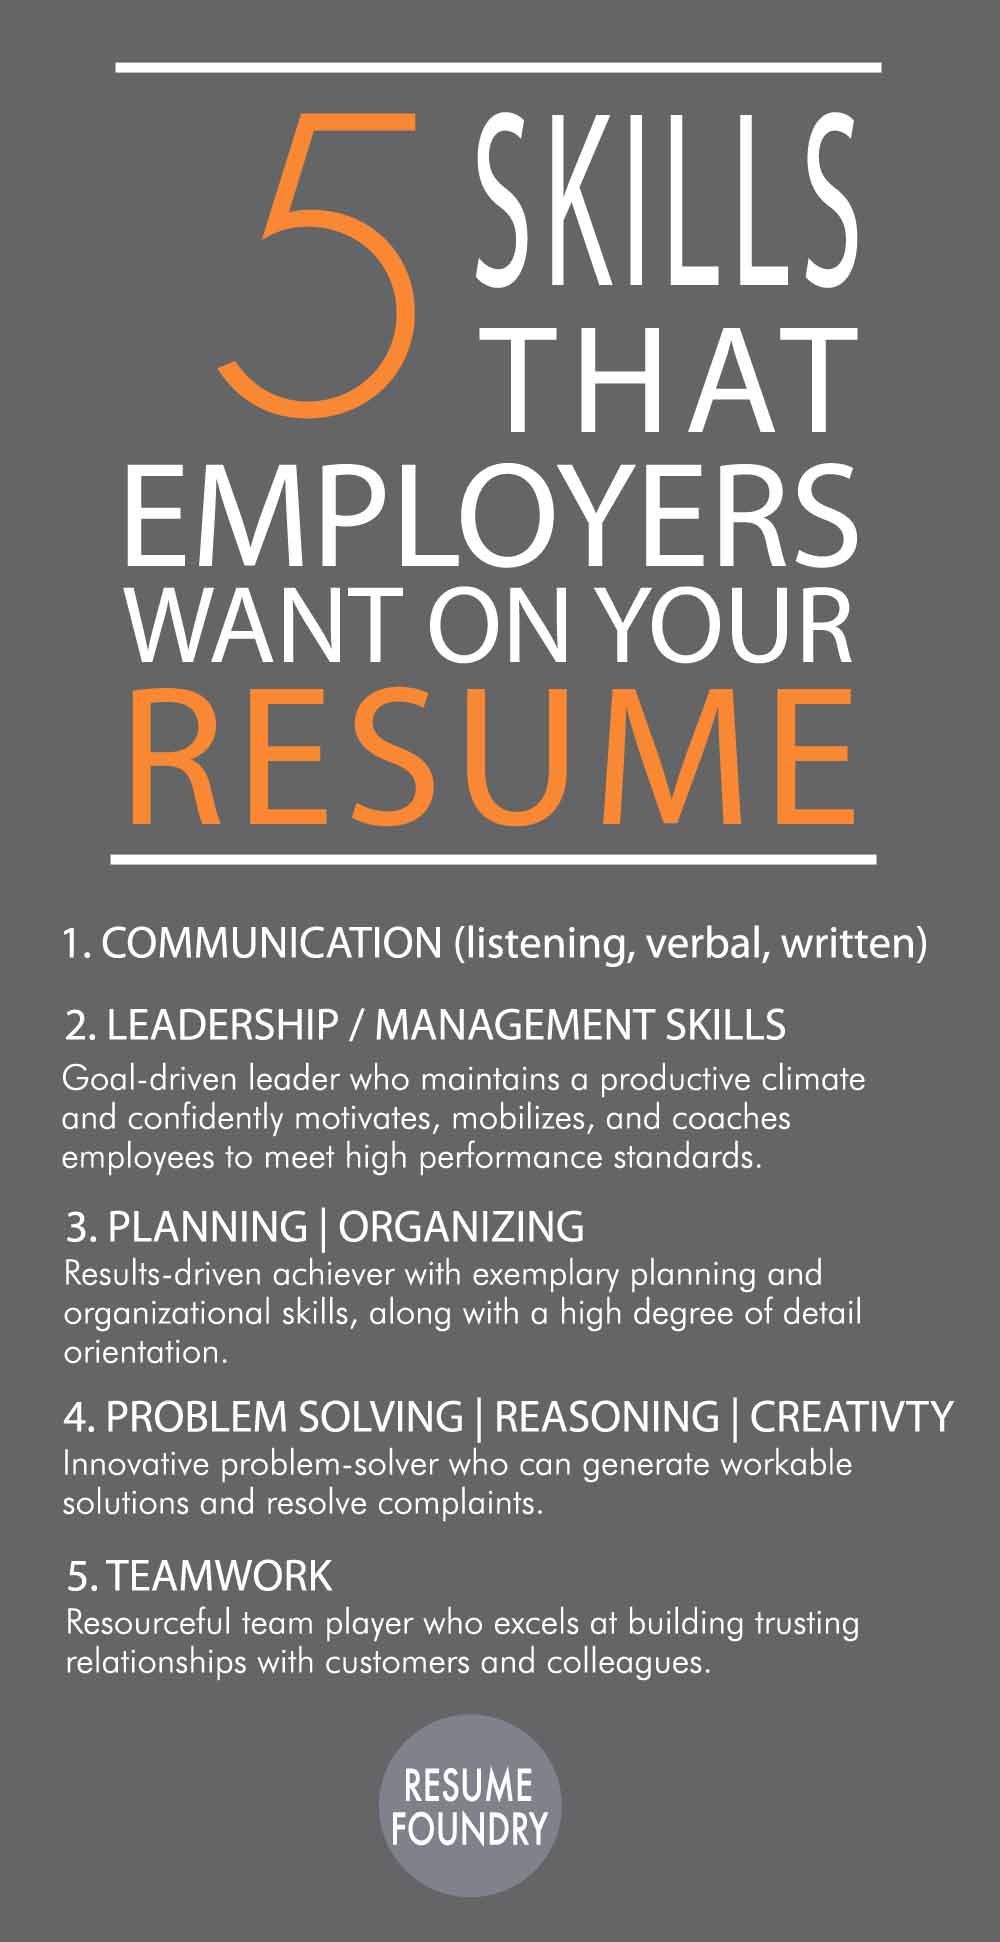 Resume Writer Jobs 5 Skills That Employees Want On Your Resume  Job Inspiration